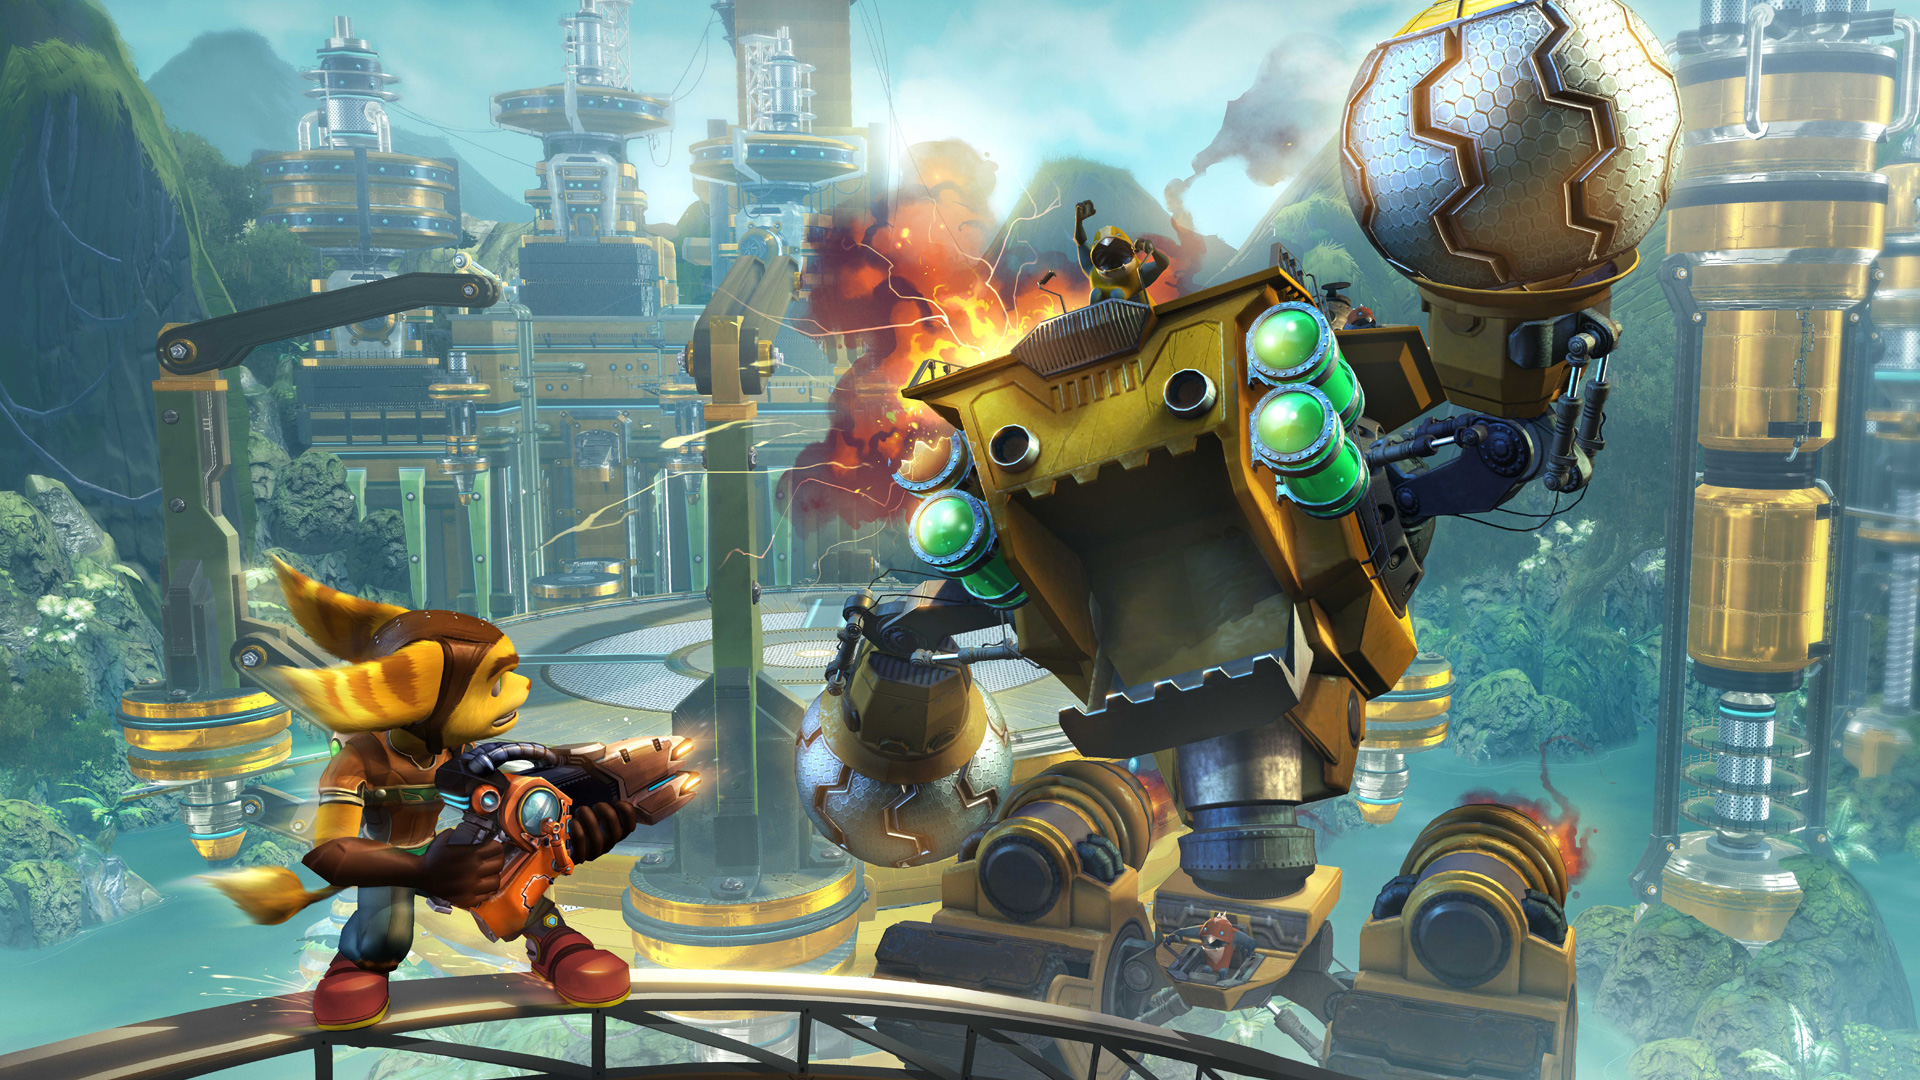 Free Ratchet & Clank Future: Tools of Destruction Wallpaper in 1920x1080